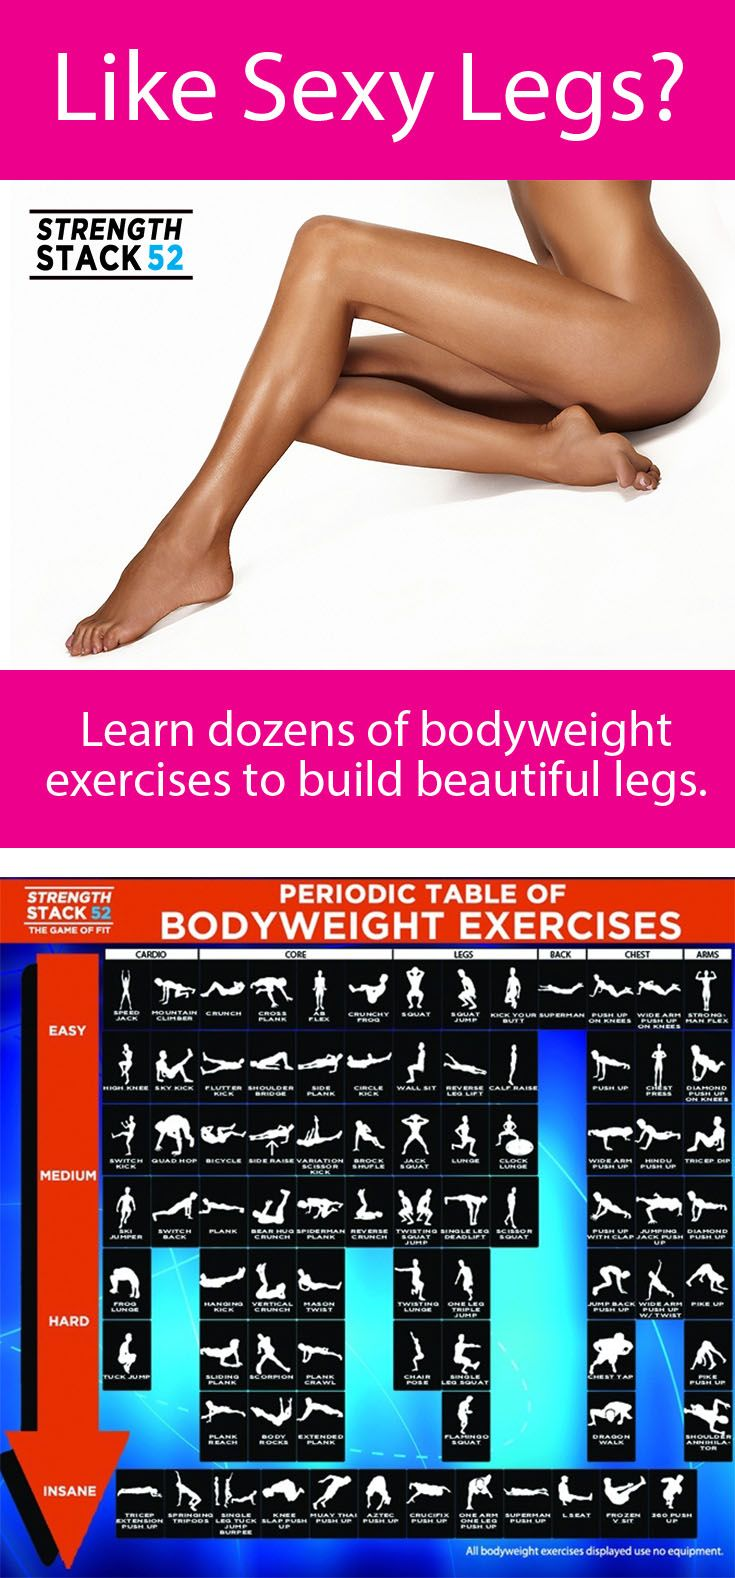 Learn The Bodyweight Exercises That Sculpt Beautiful Y Legs They Re Organized By Difficulty Click On Any Silhouette For A Demonstration Video